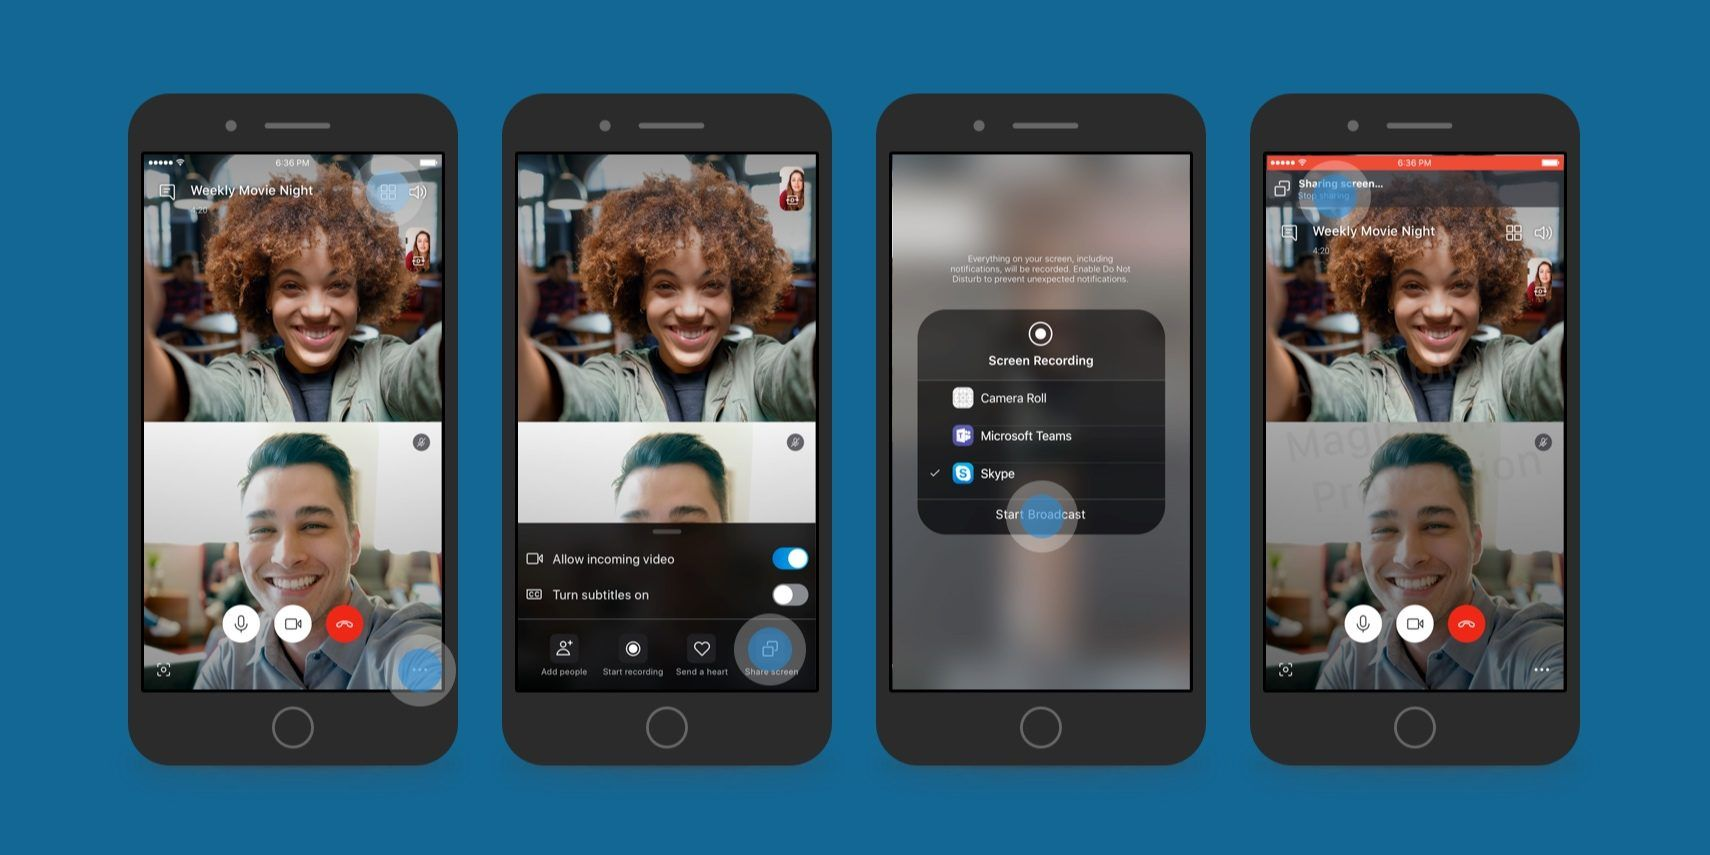 Skype for iOS beta adds ability to share your iPhone and